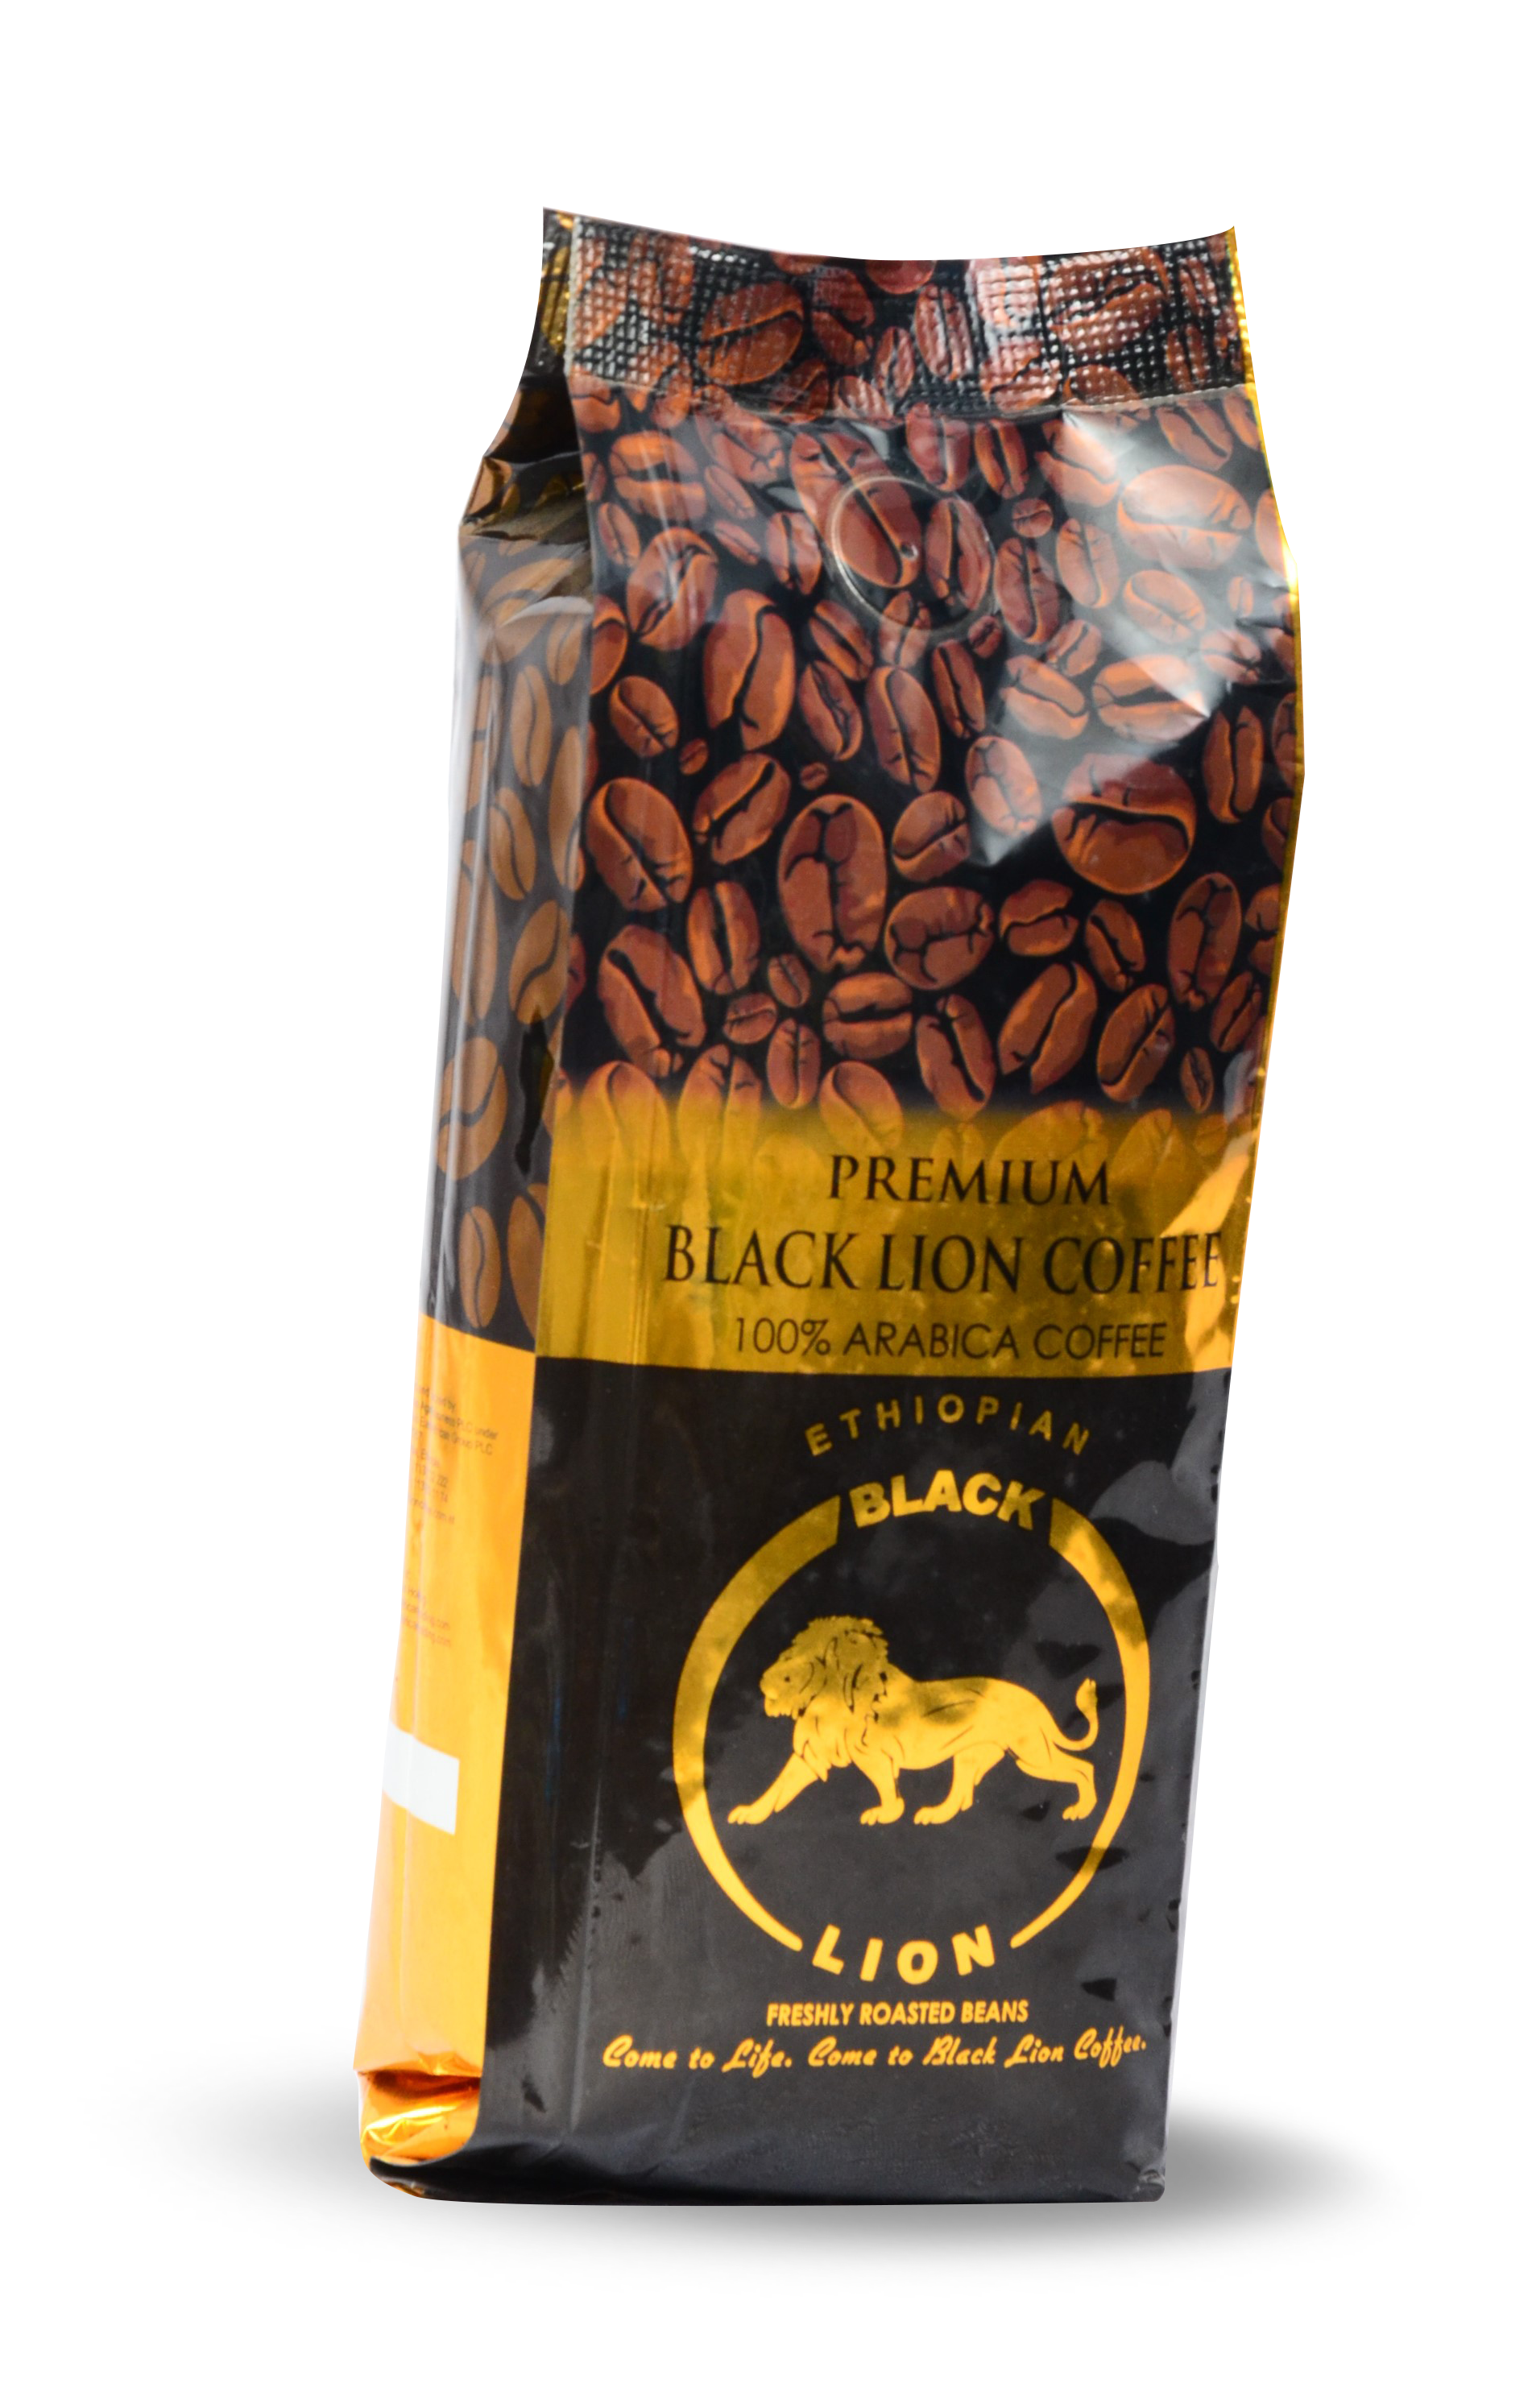 250gm (8.18Oz) Roasted Bean Black Lion Premium Coffee Image